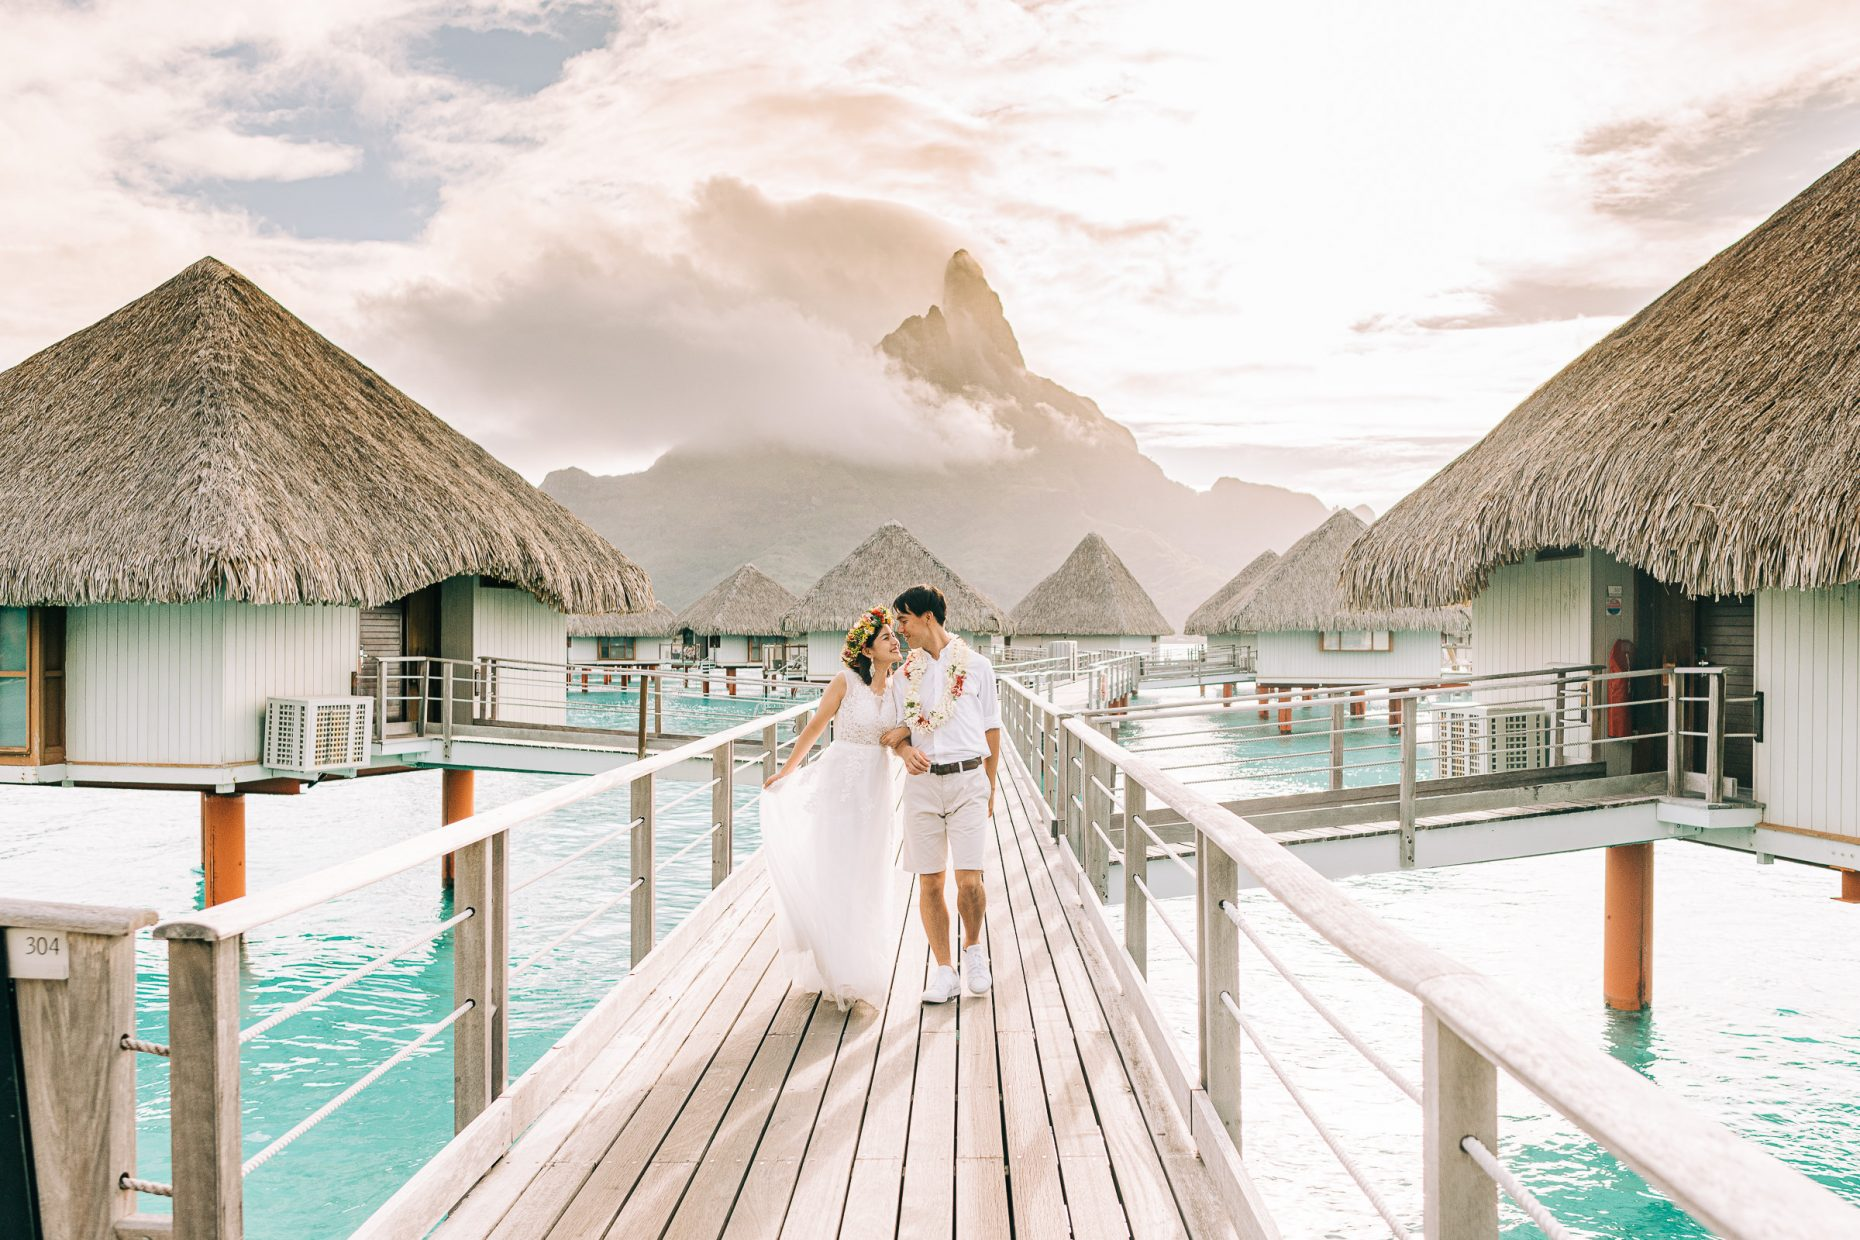 Bora Bora Honeymoon - Photographer